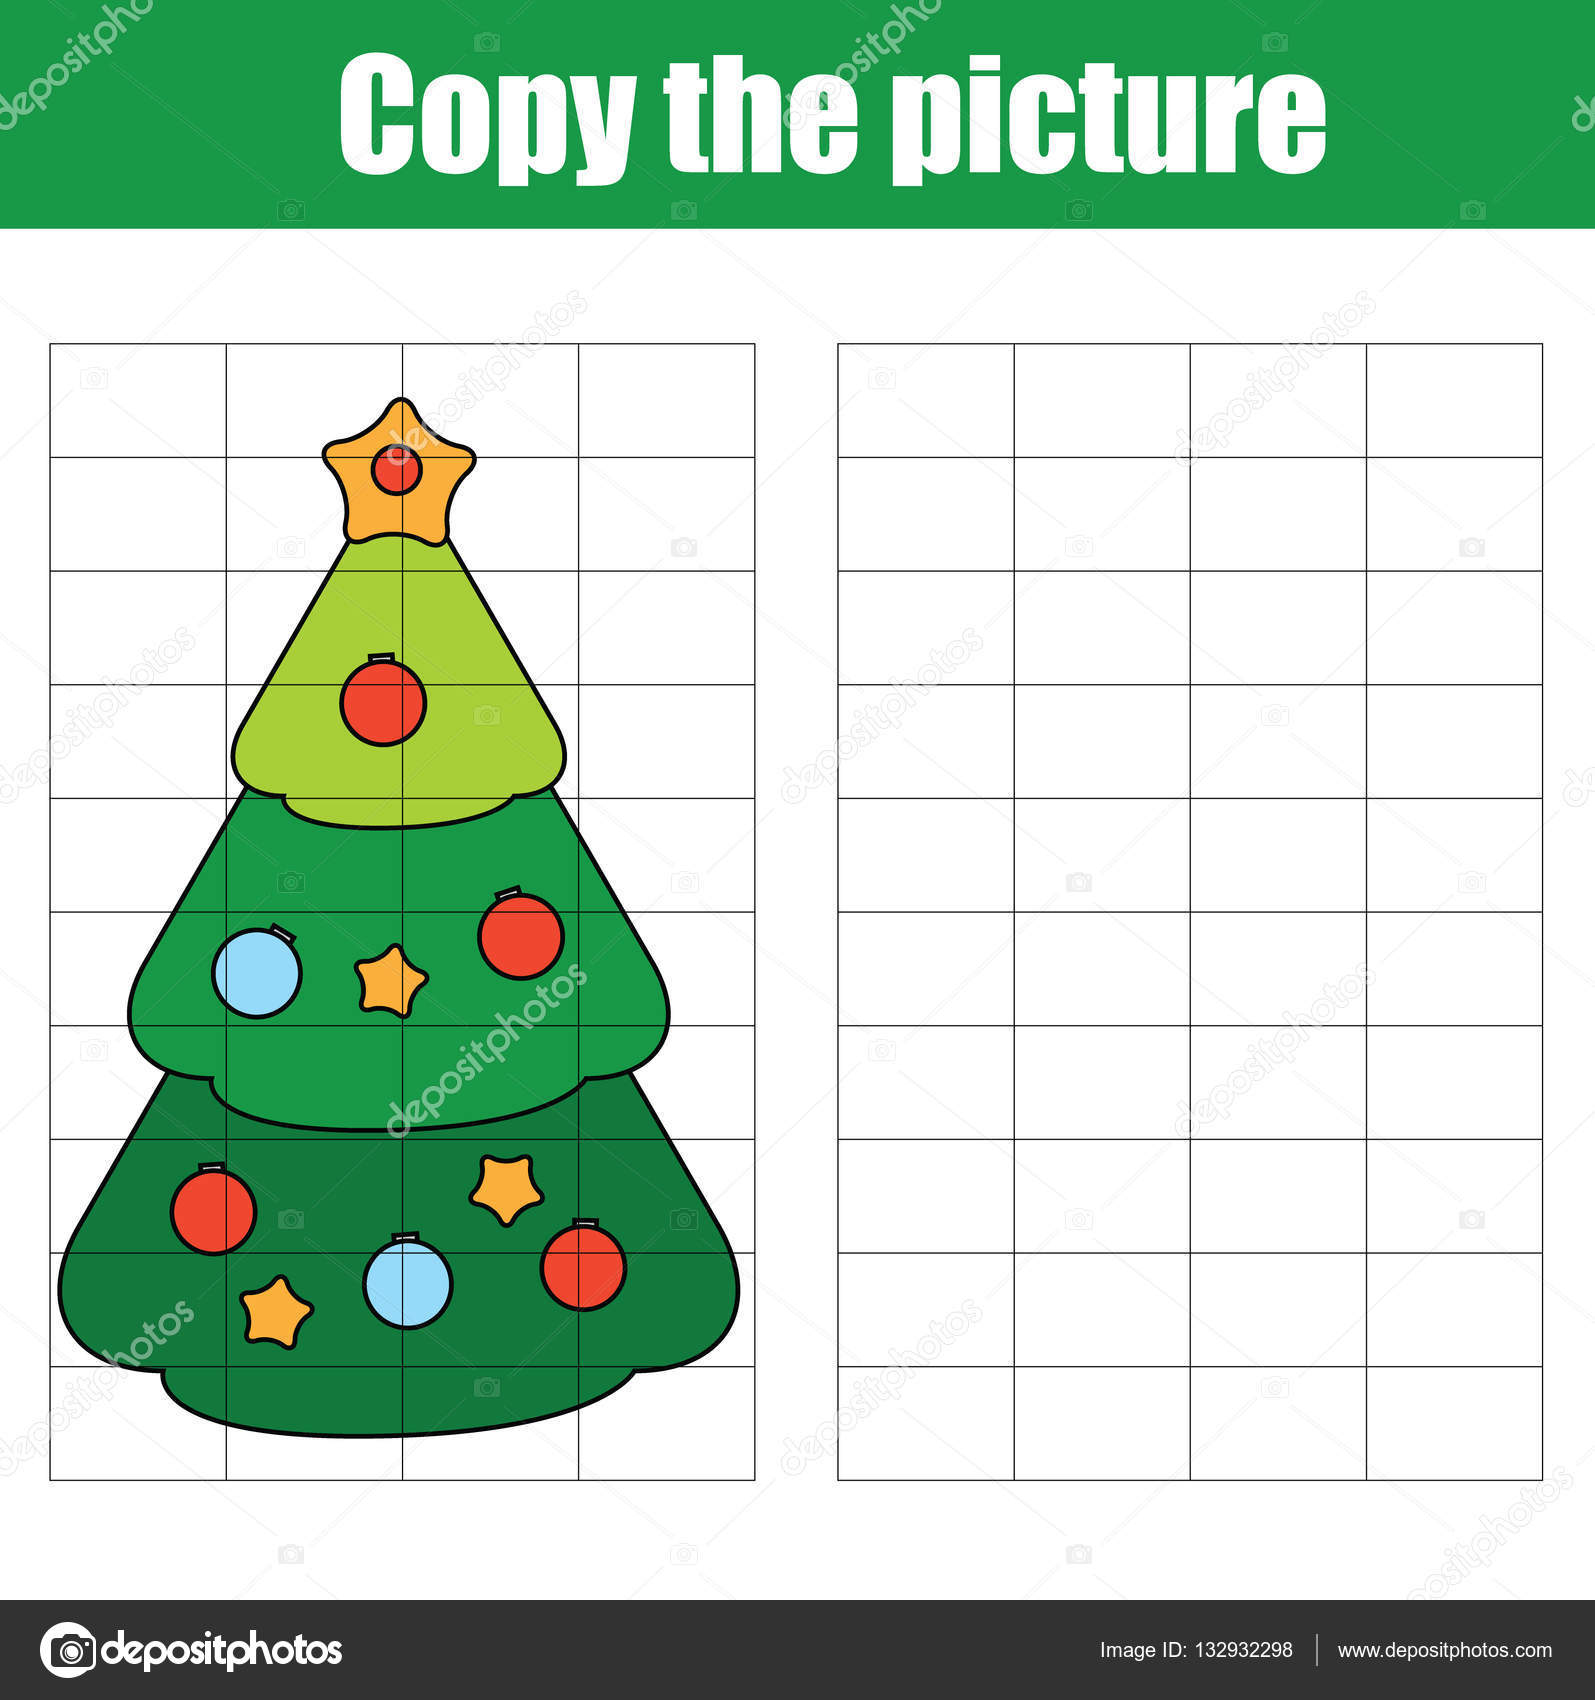 copy the picture using a grid children educational drawing game printable drawing kids activity worksheet copy the christmas tree - Christmas Tree Game